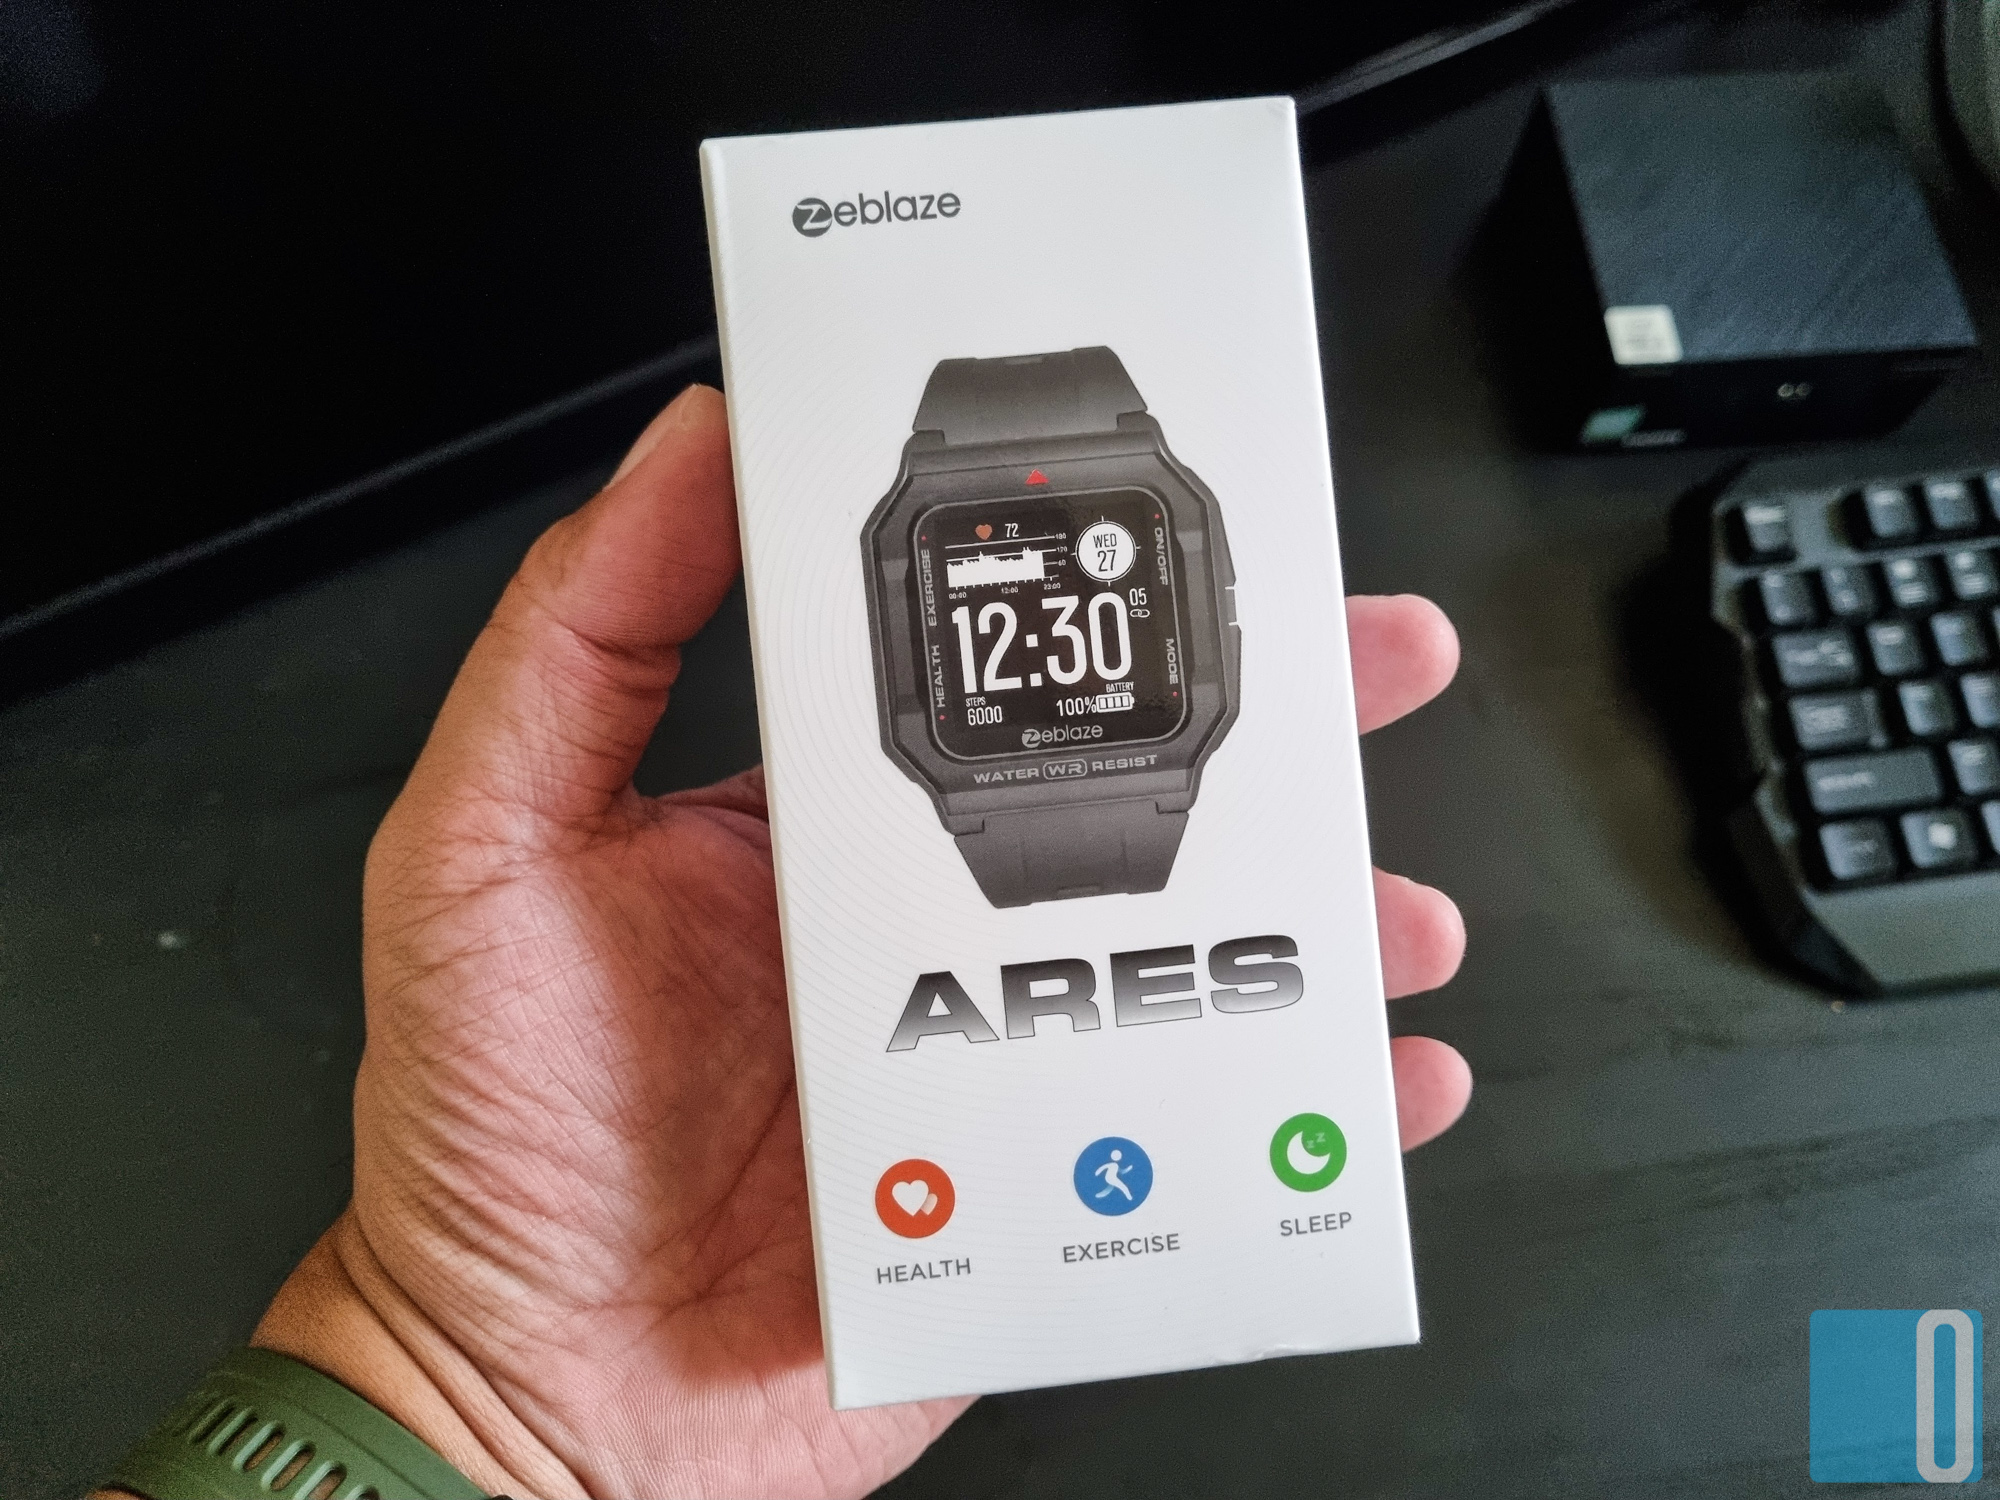 ZeBlaze Ares Smartwatch Review - A Stylish Retro Wearable On Your Wrist